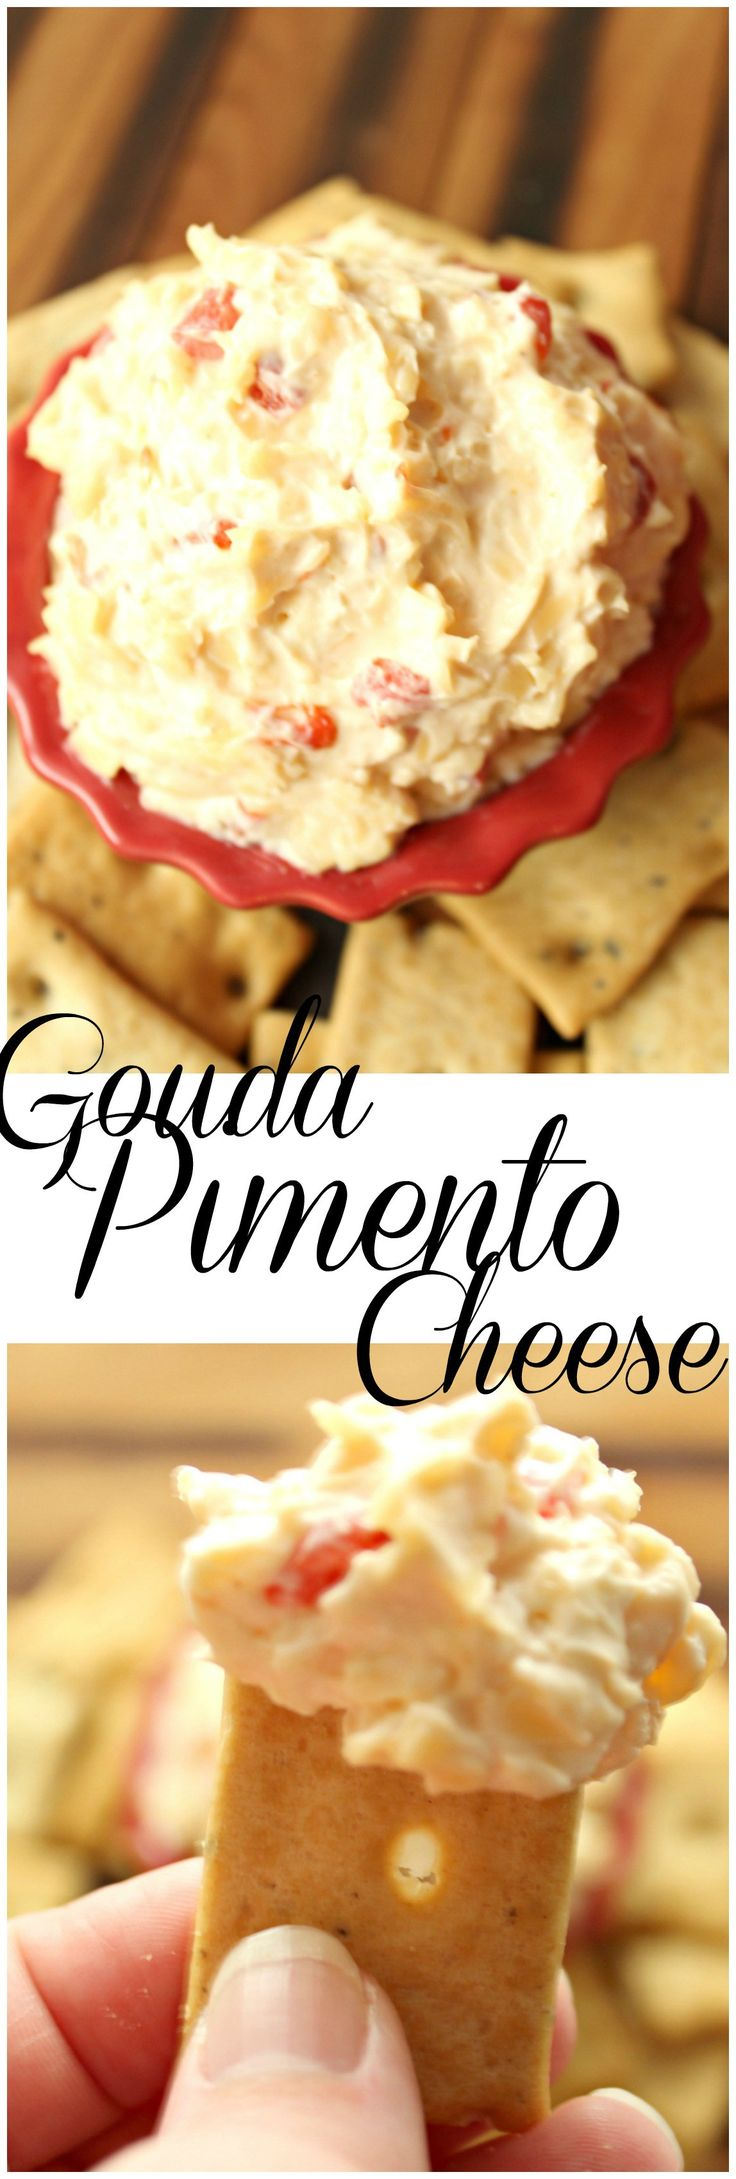 Gouda Pimento Cheese is an awesome twist on a favorite snack that is perfect for the Spring and Summer seasons outside. So delicious and easy to make!